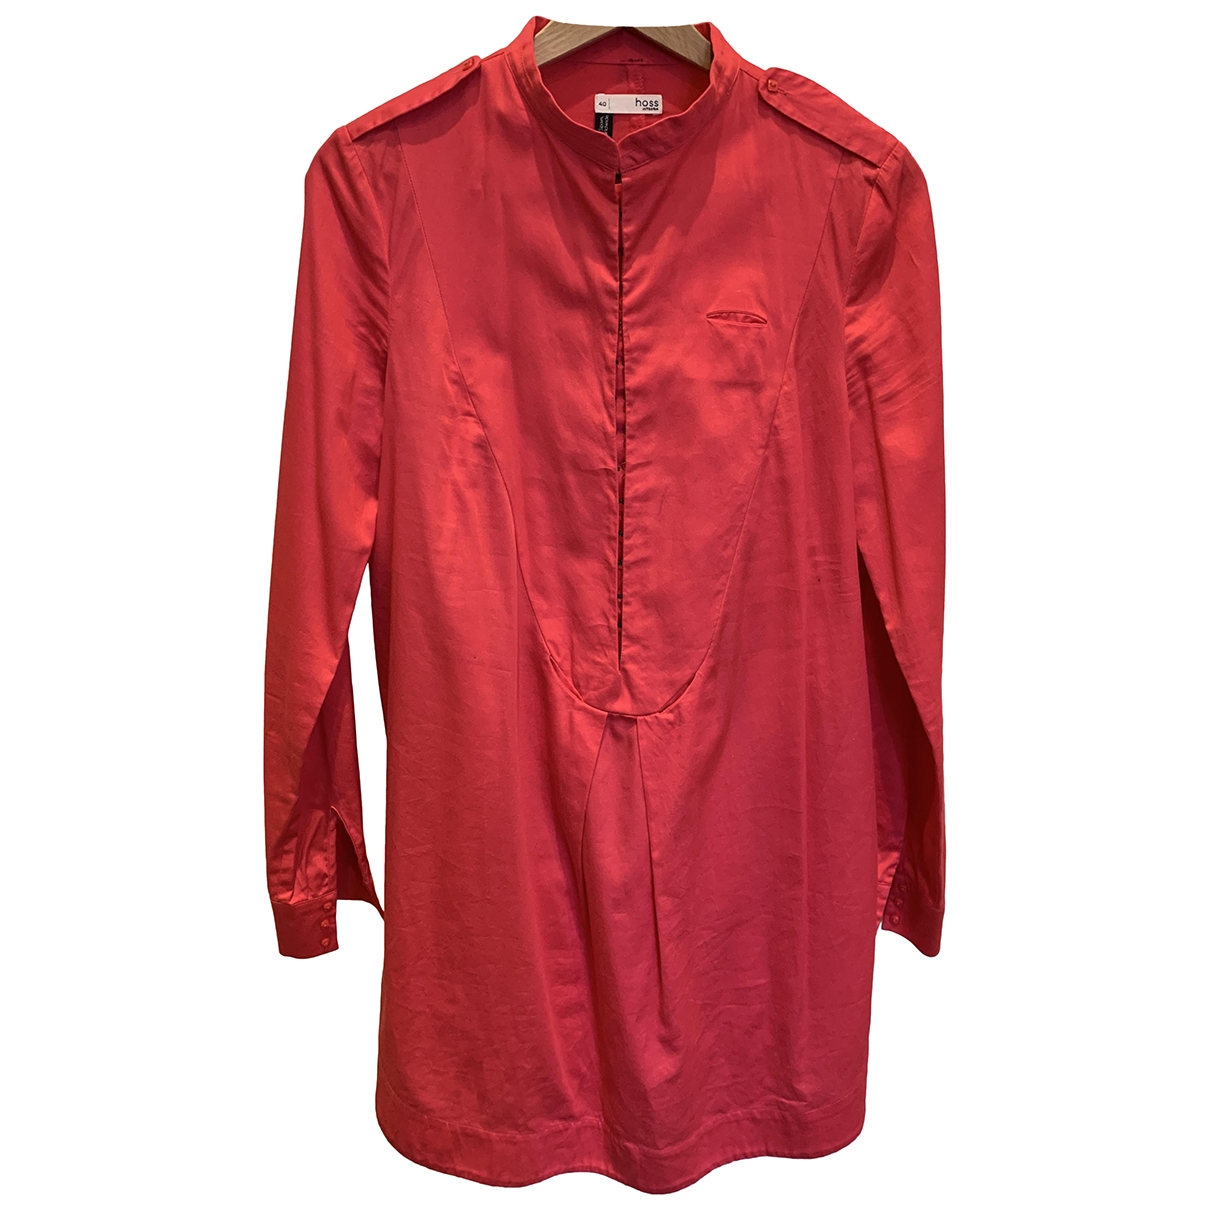 Hoss Intropia \N Red Cotton  top for Women 44 IT